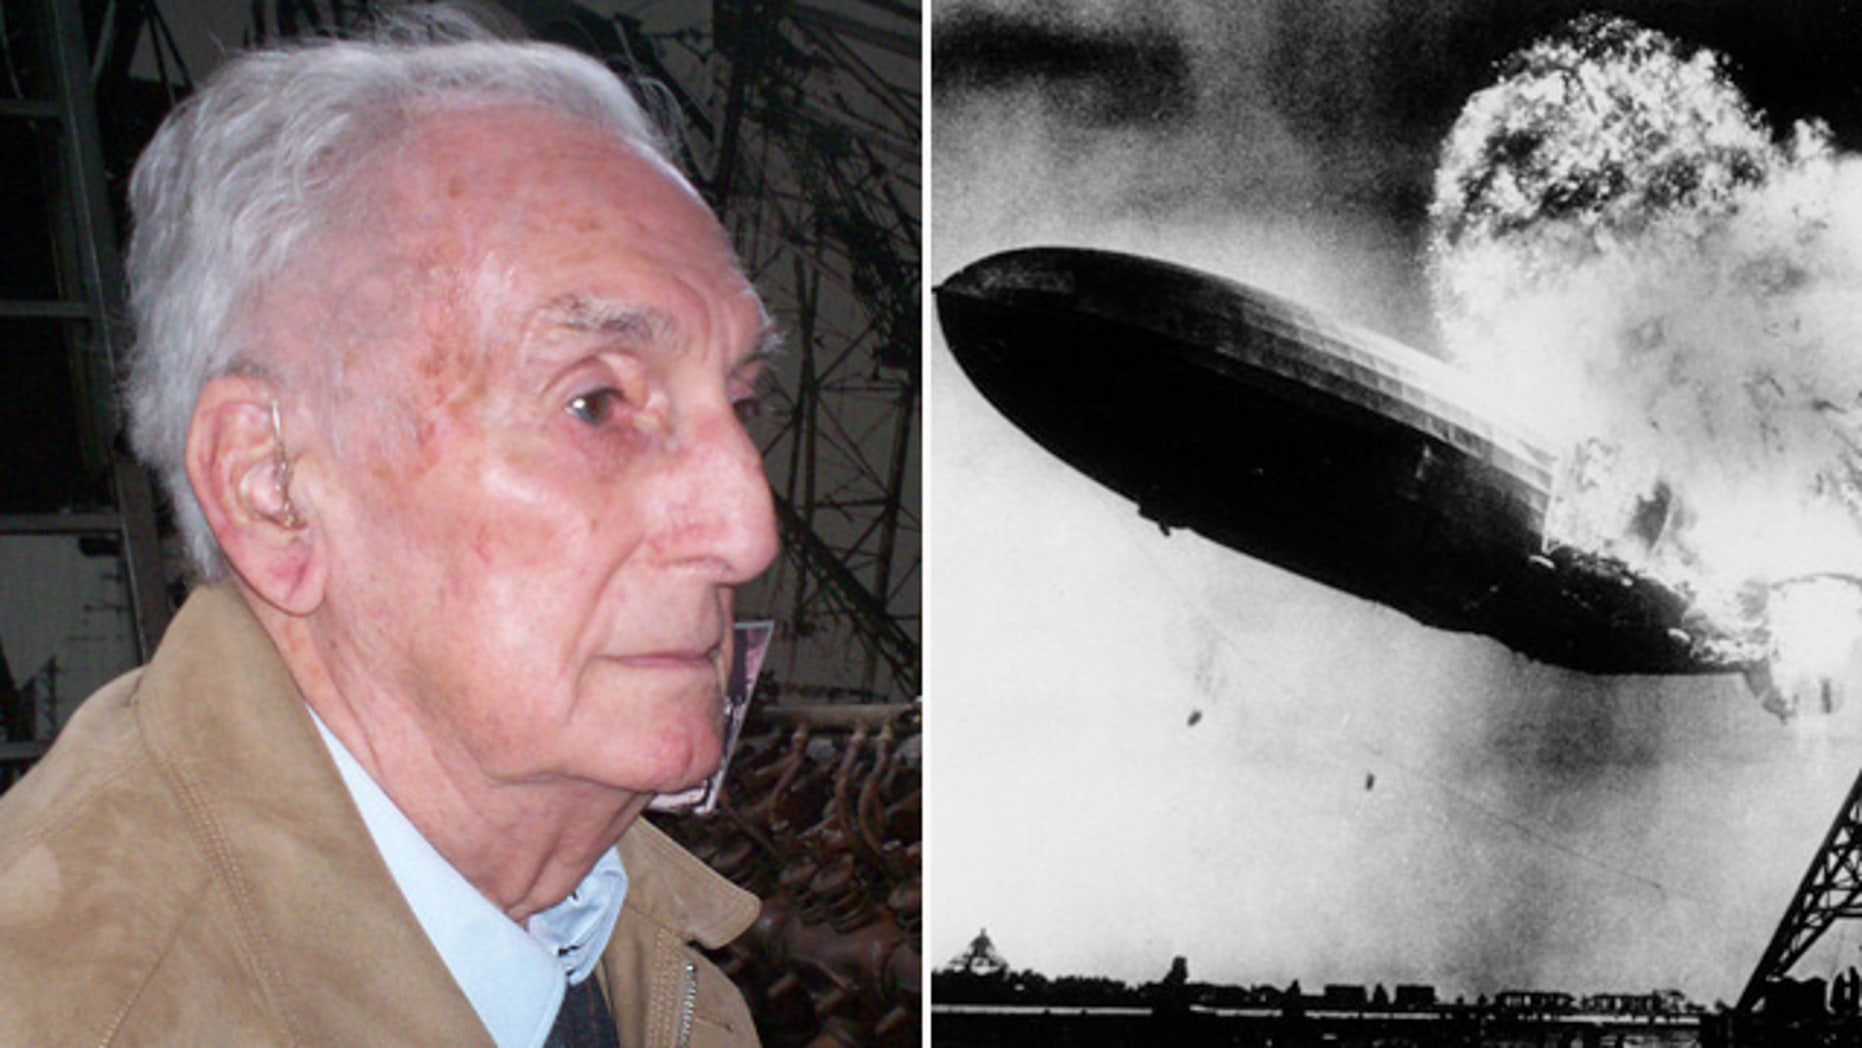 An undated photo, left, provided by John Provan shows Werner Franz, the last surviving crew member of the Hindenburg airship disaster, right, 77 years ago. Franz died Aug. 13 in Frankfurt, Germany. Franz was a cabin boy on the Hindenburg, making three journeys to South America and one to North America before the disaster. (AP Photo/dpa, John Provan)